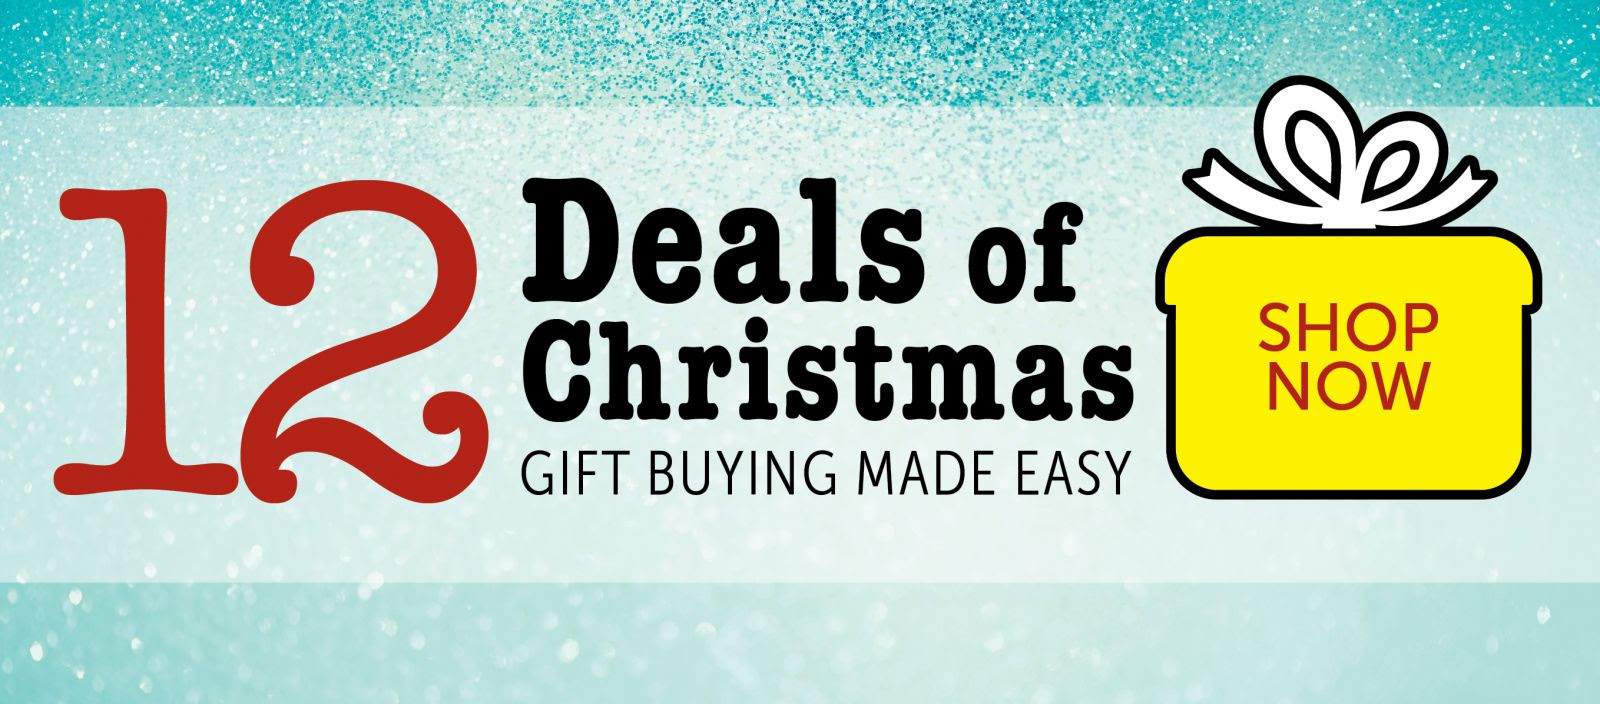 12 Deals of Christmas, gift buying made easy!